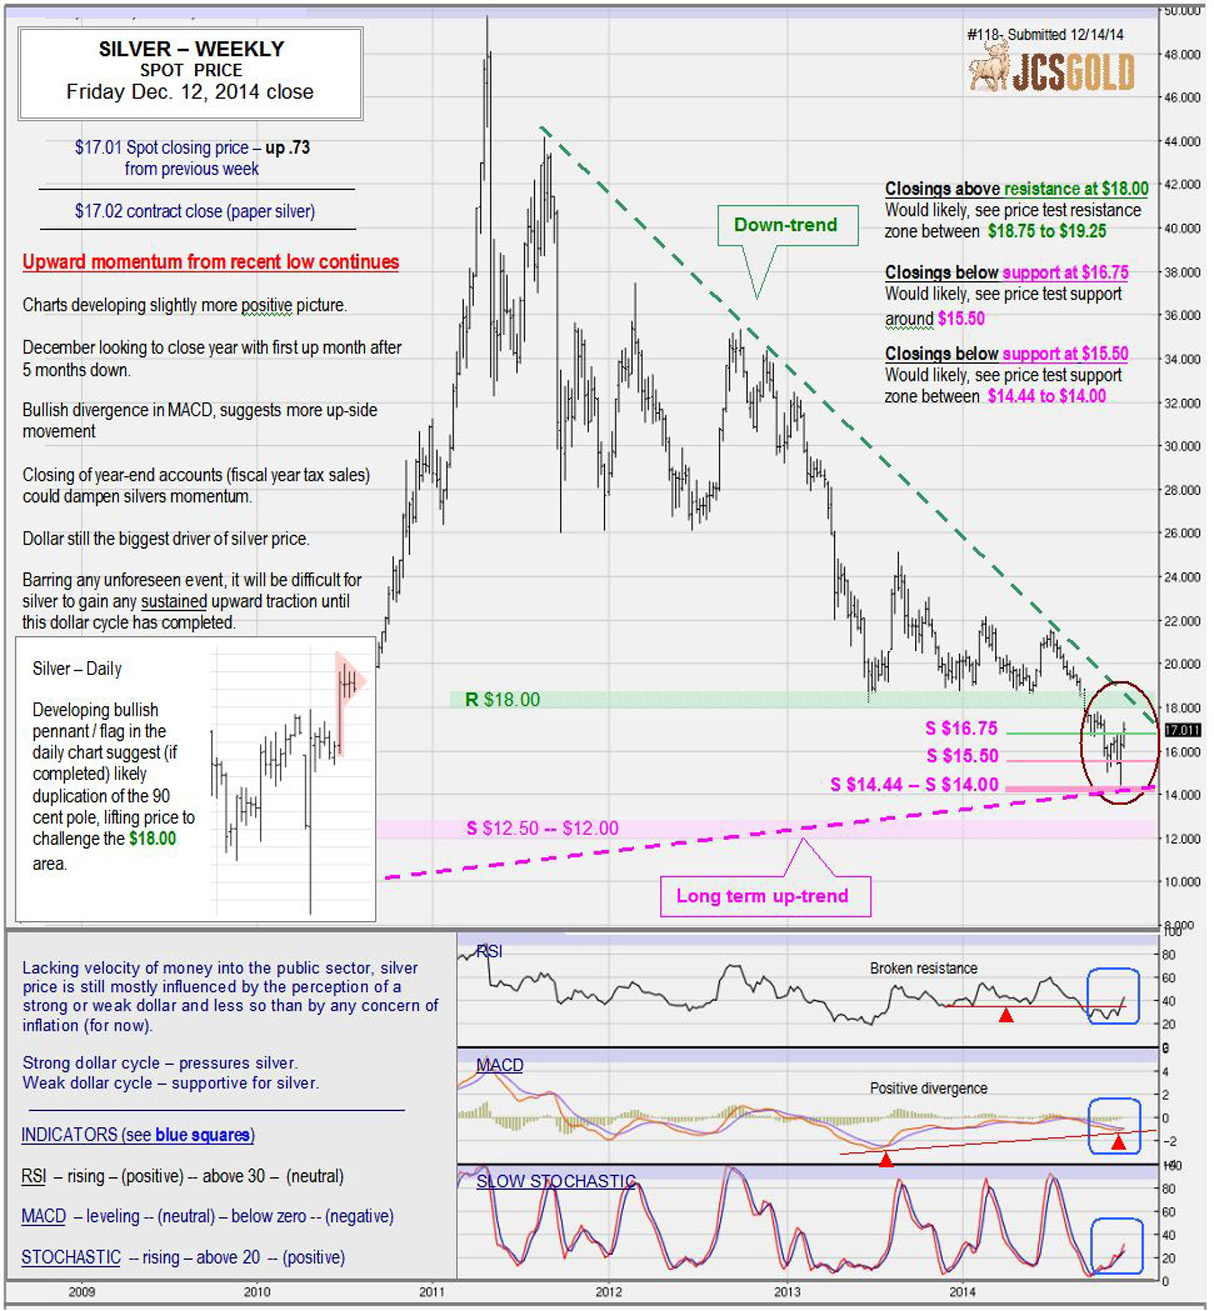 Dec 12, 2014 chart & commentary